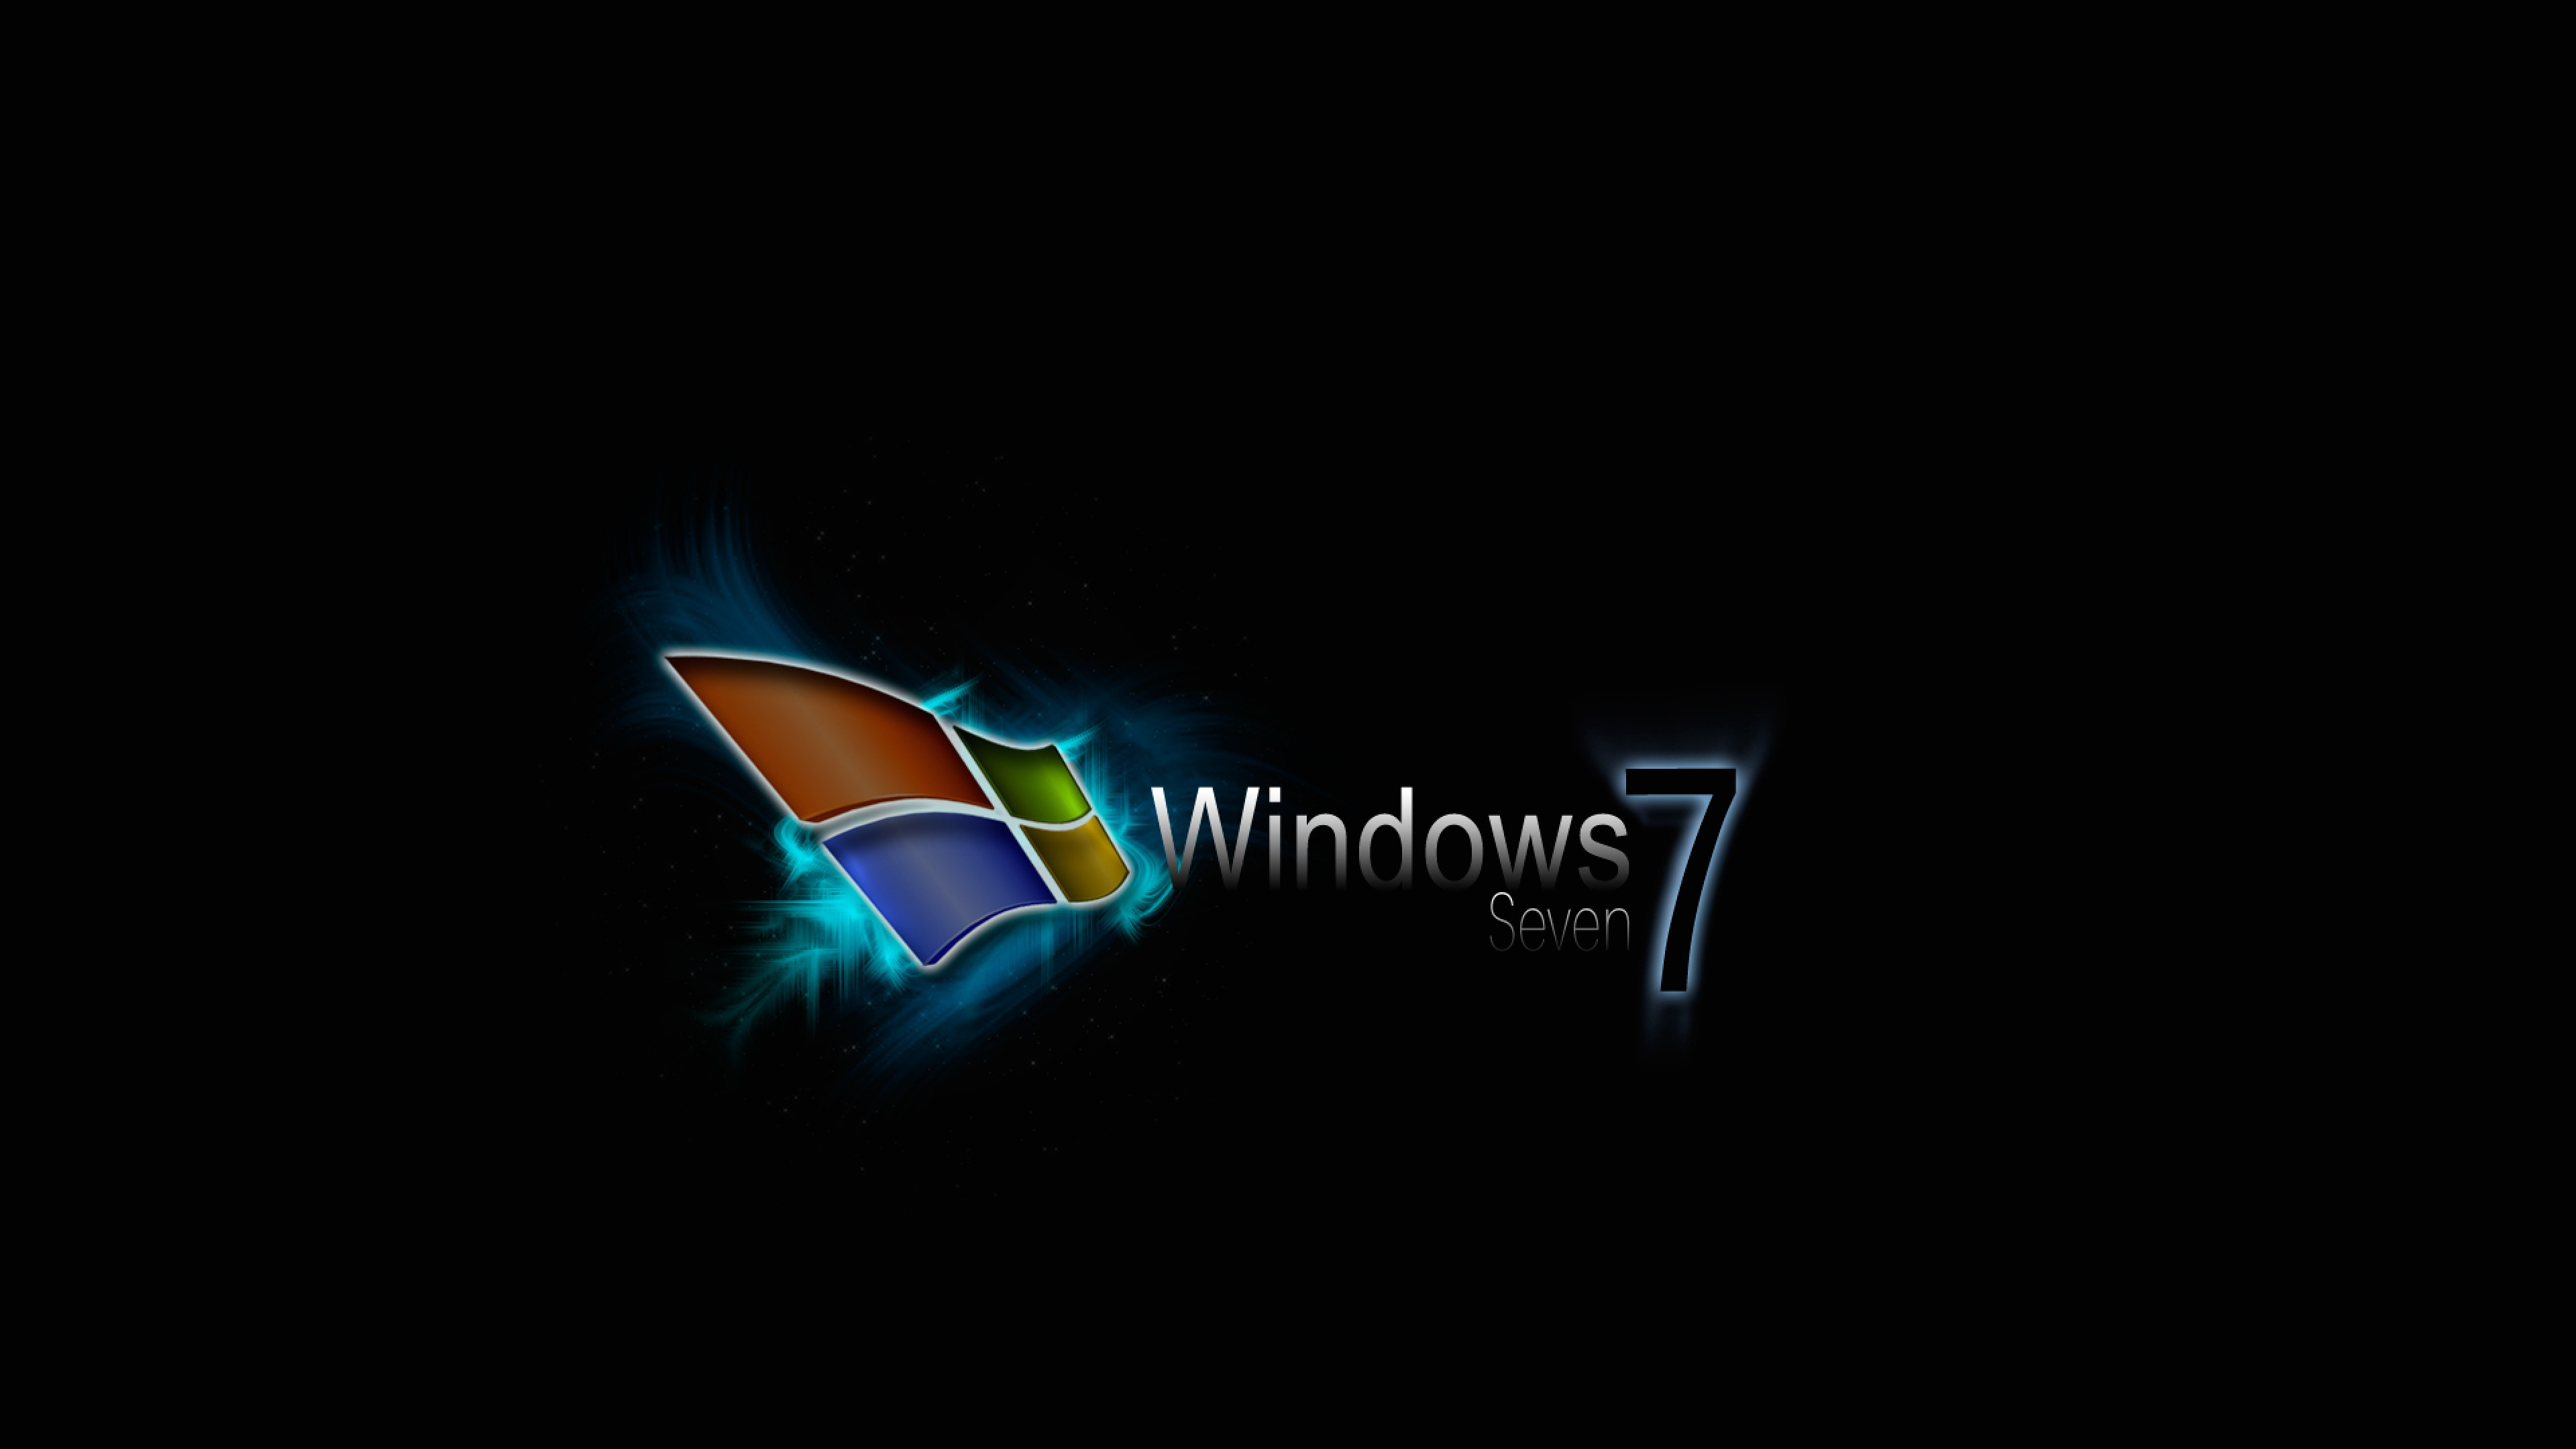 Development of Windows Vista  Wikipedia